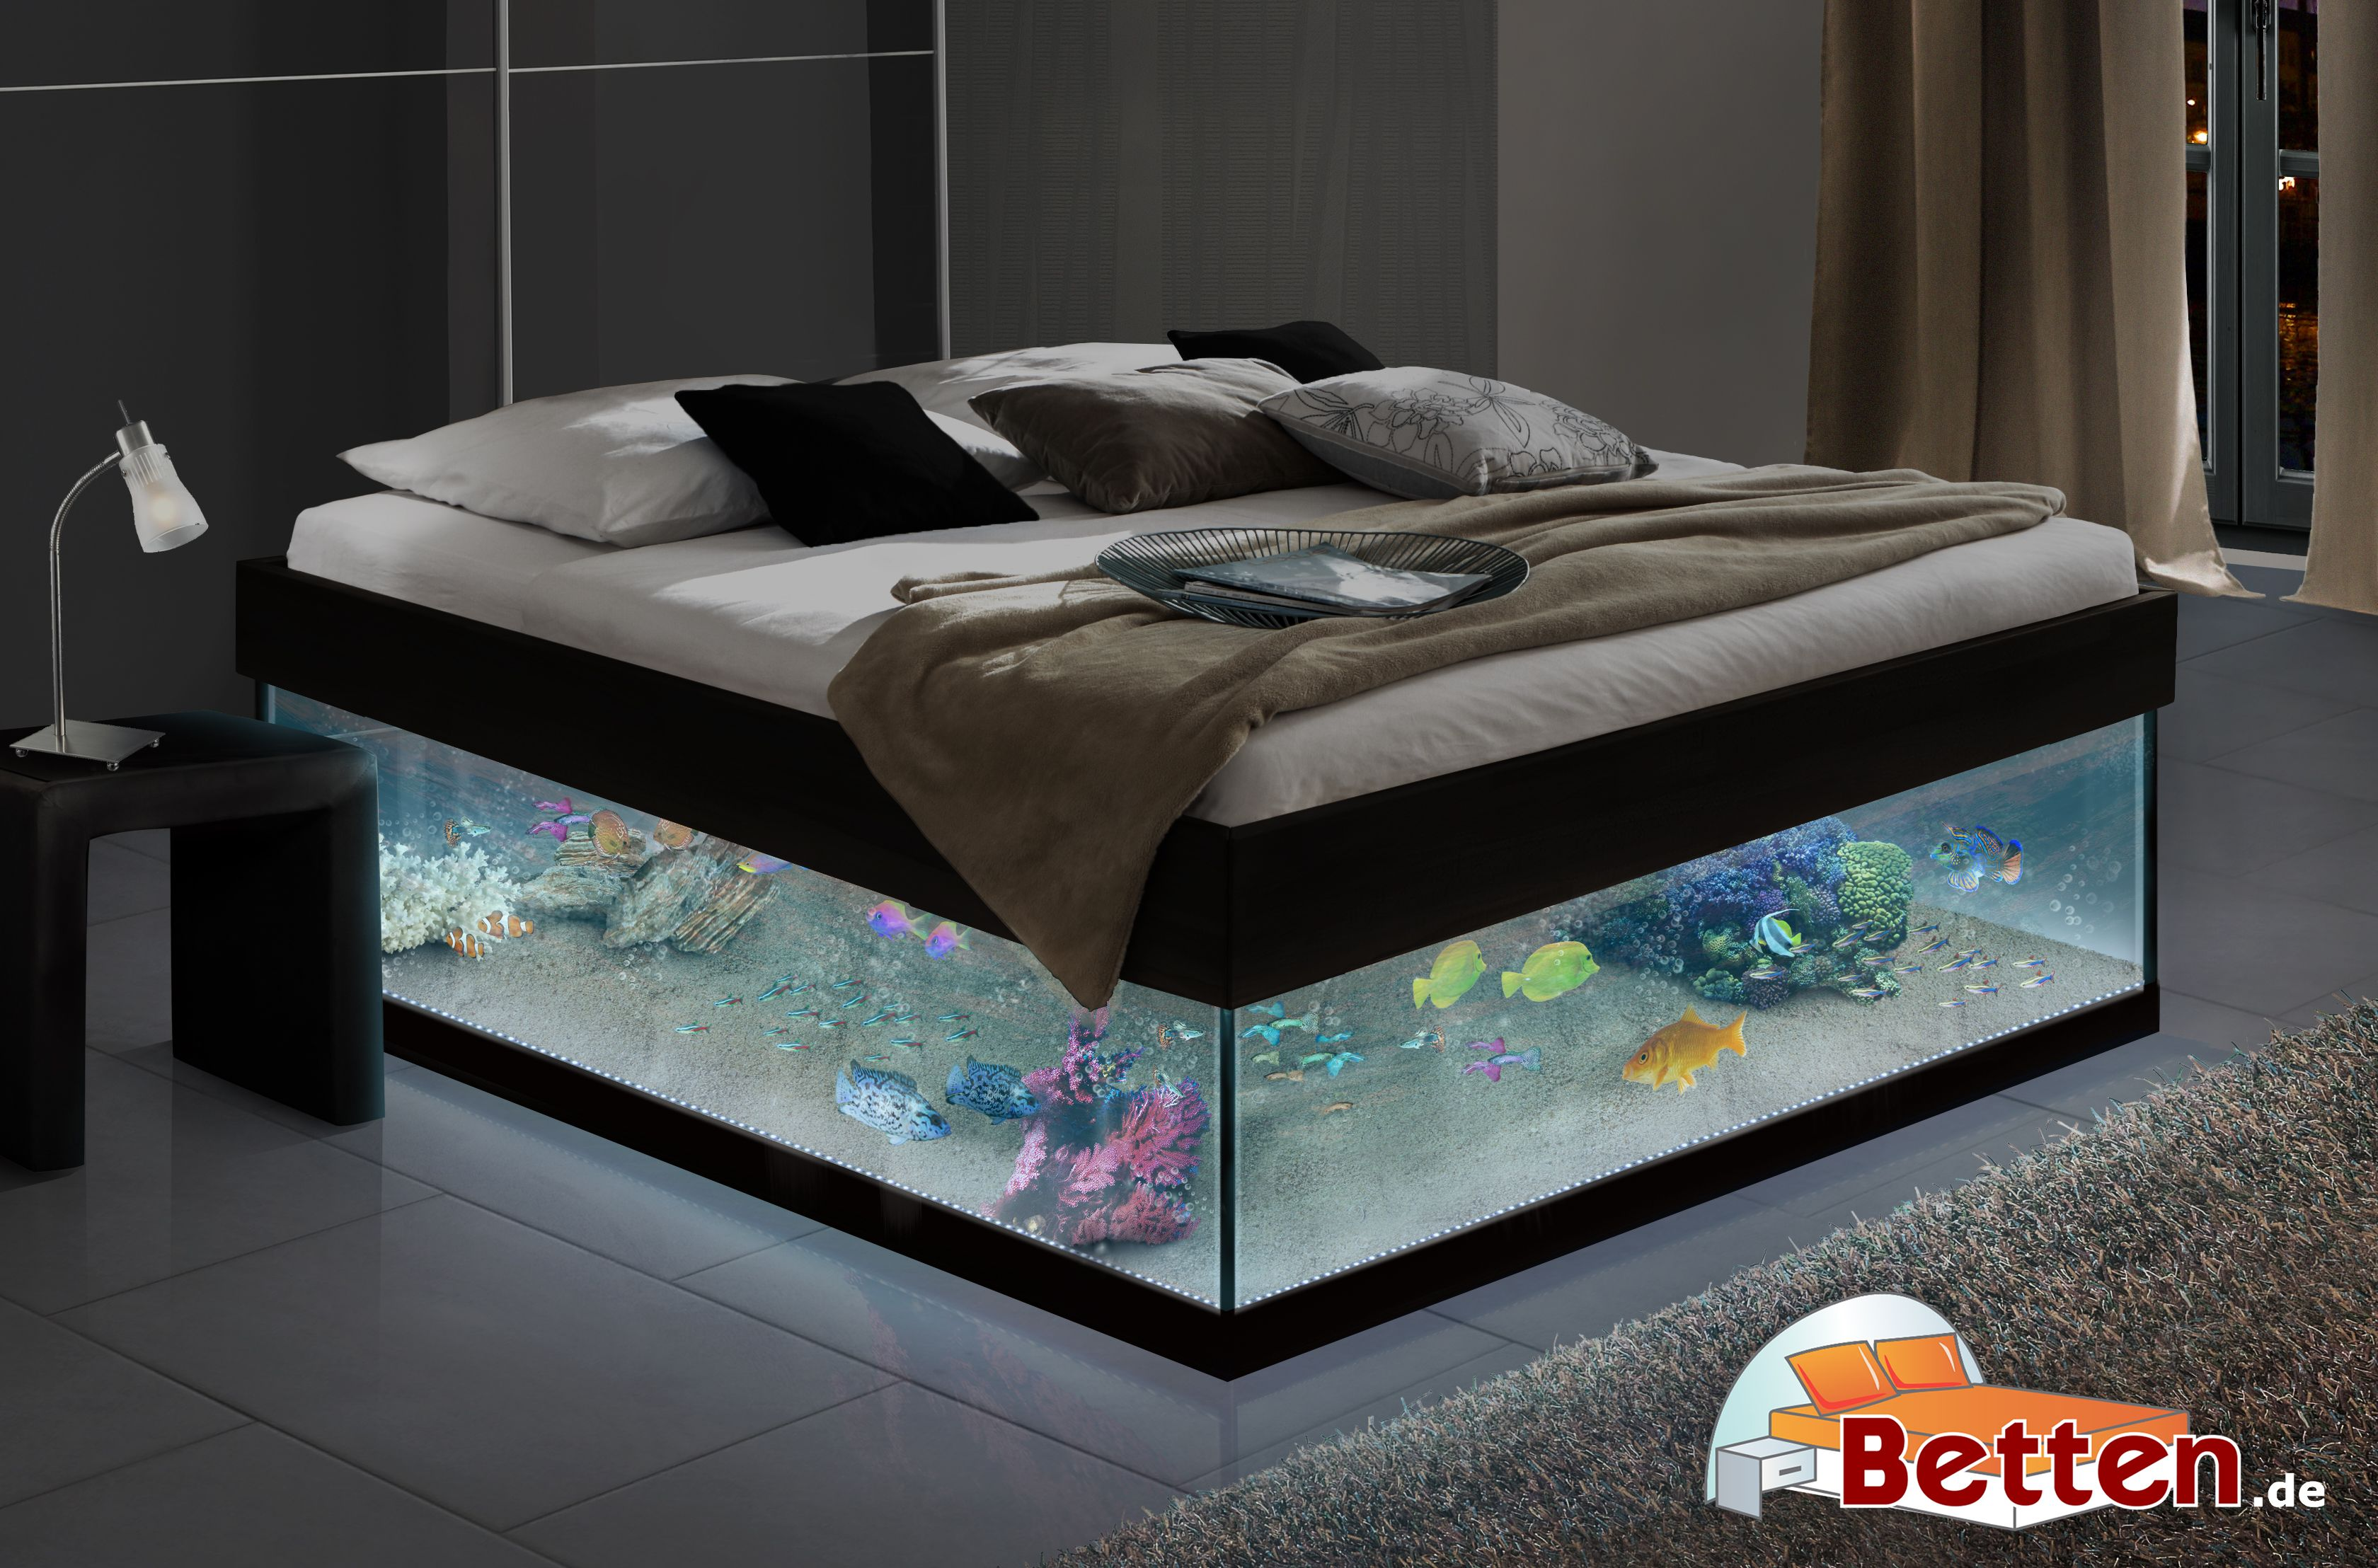 leuchtendes aquariumbett au ergew hnliche betten und schlafzimmerm bel pinterest. Black Bedroom Furniture Sets. Home Design Ideas